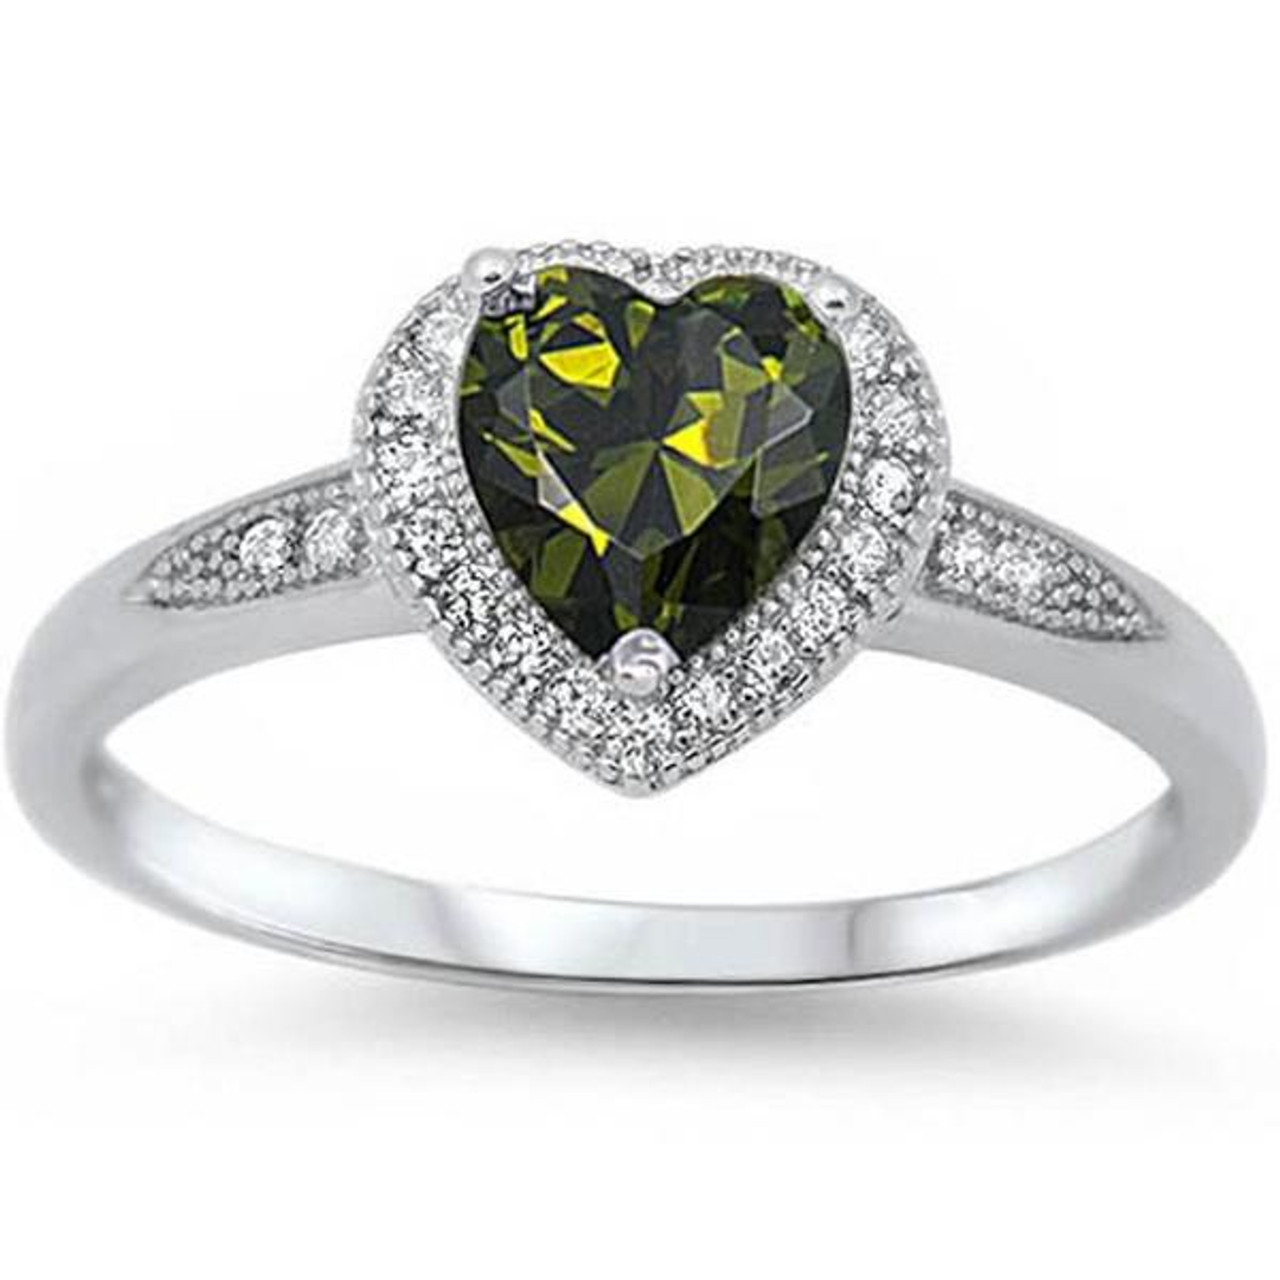 .925 Sterling Silver Radiant Cut Clear CZ Engagement Wedding Promise Ring NEW